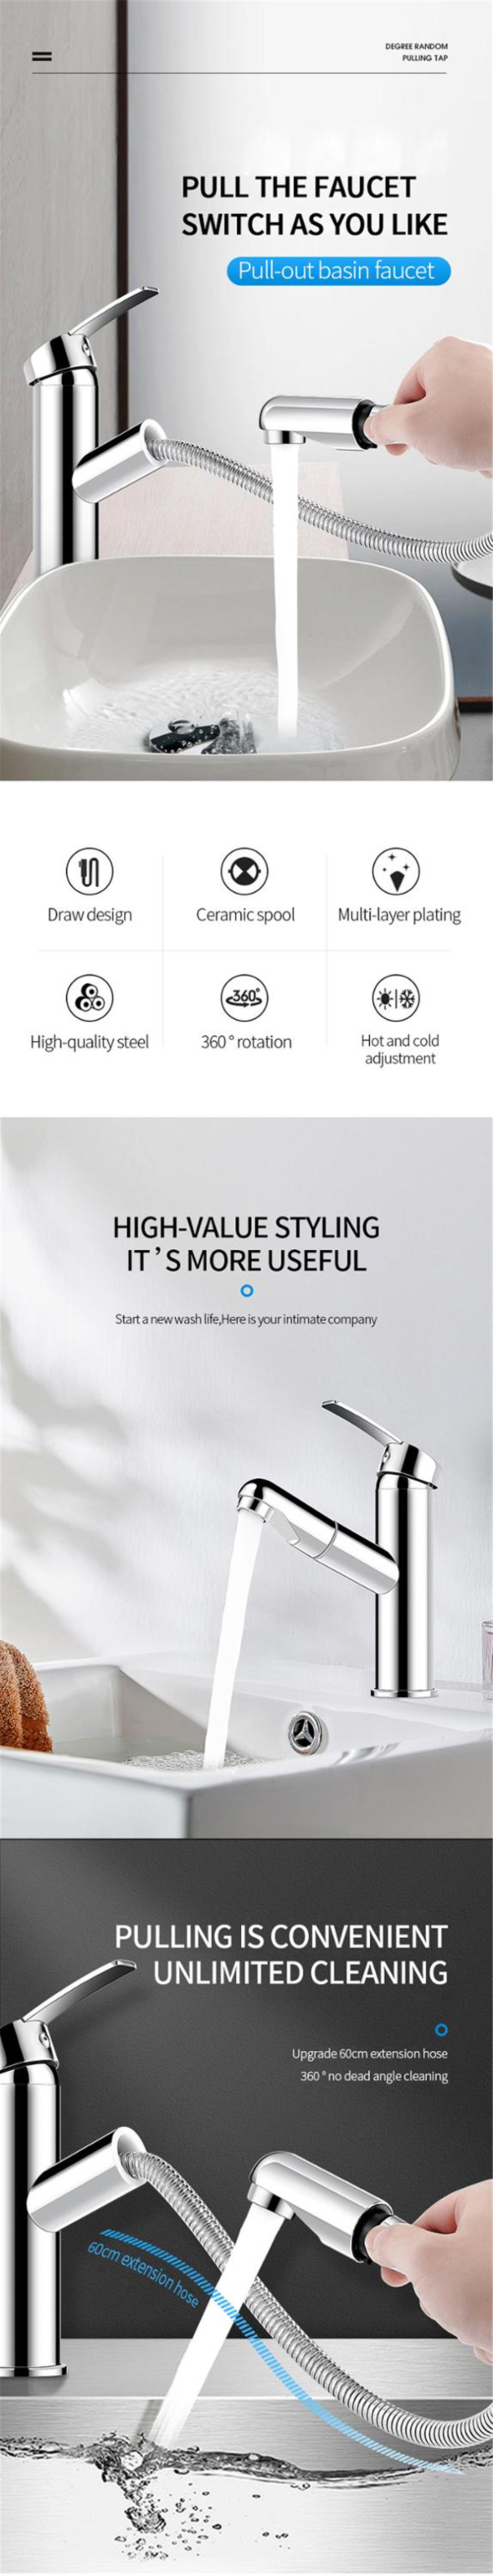 Hb755ec4d744a4d1398ed966651f35d7fN XUNSHINI Bathroom Kitchen Basin Faucet Single Handle Pull Out Spray Sink Tap Hot And Cold Water Crane Deck Mount Faucets